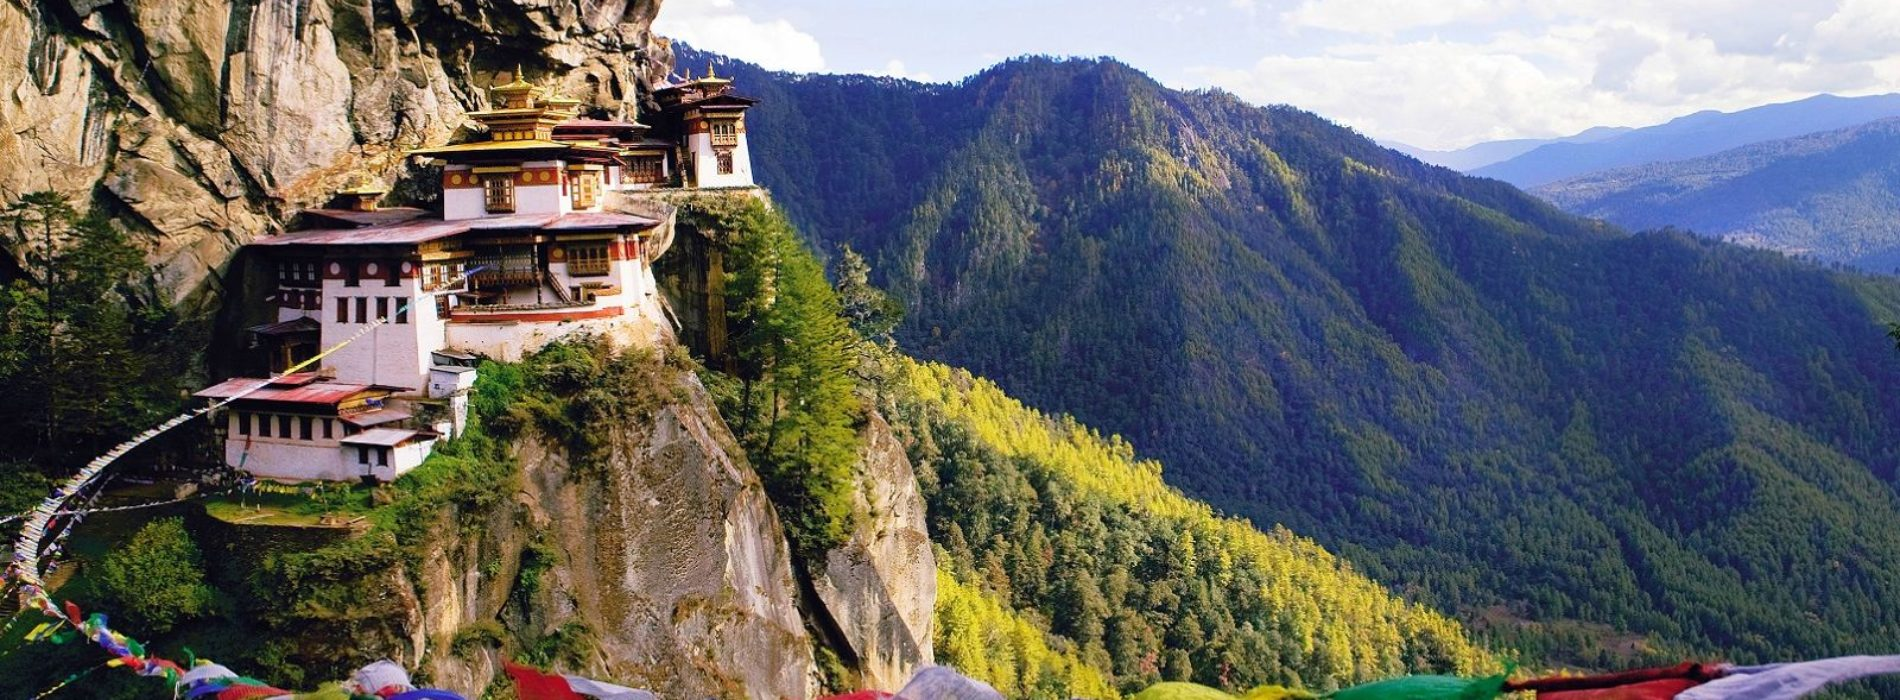 Plan a trip to Bhutan from India